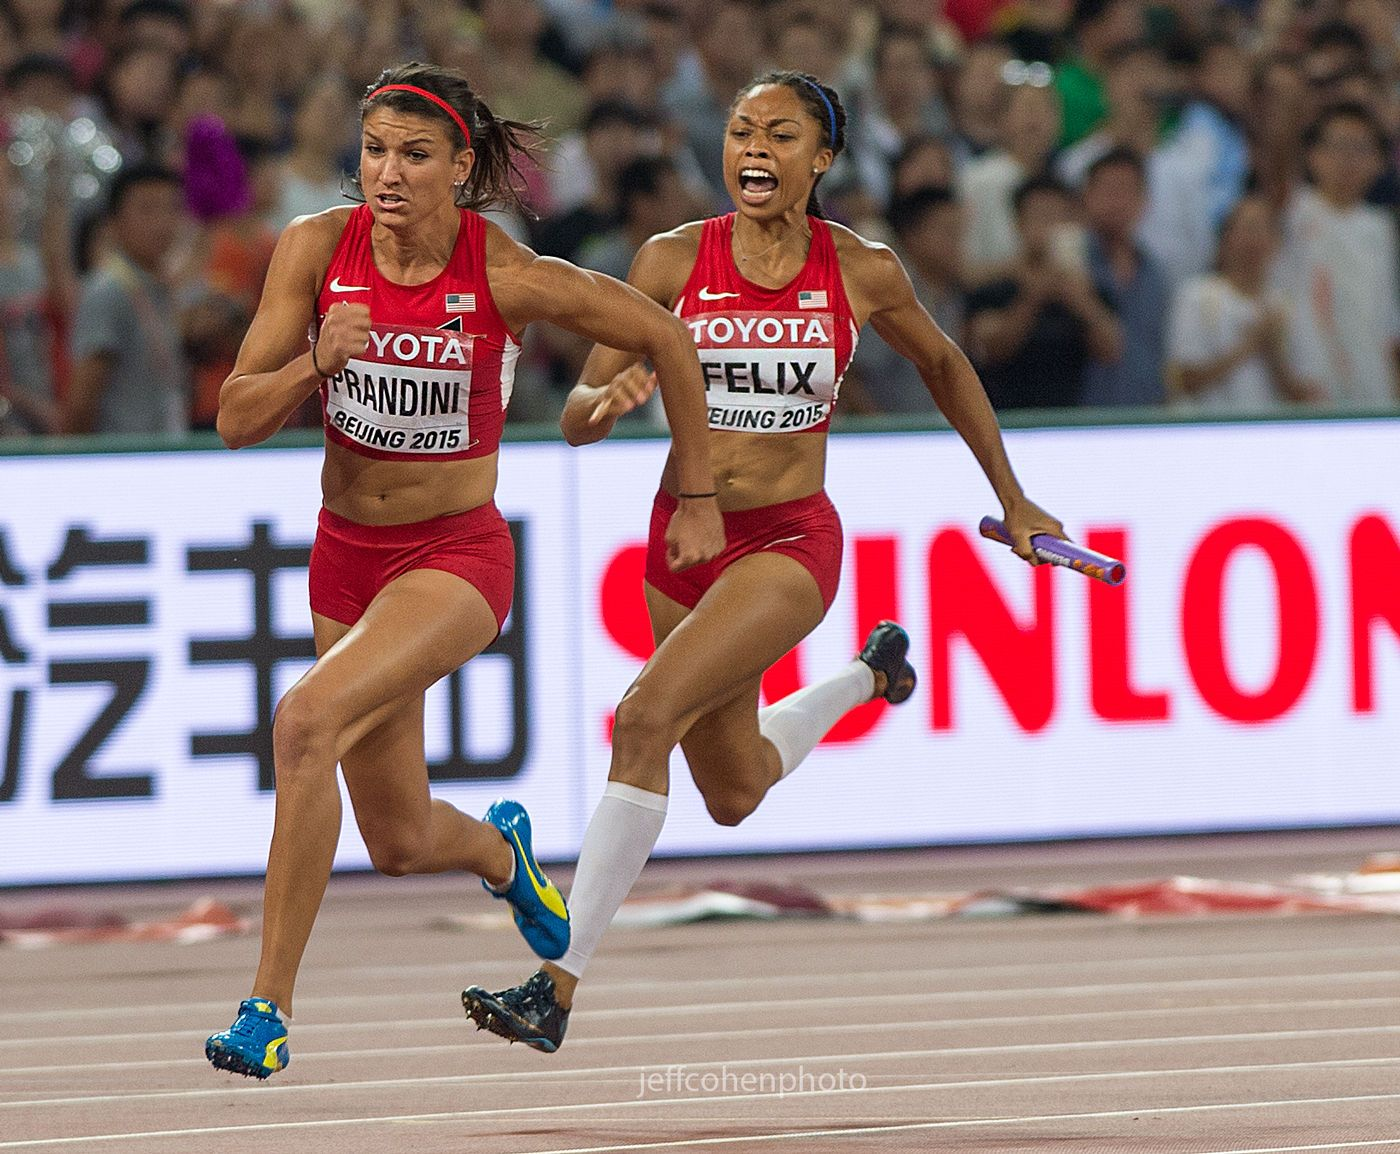 1beijing2015_night_8_felix_prandini_4x100_jeff_cohen_photo_32209_web.jpg